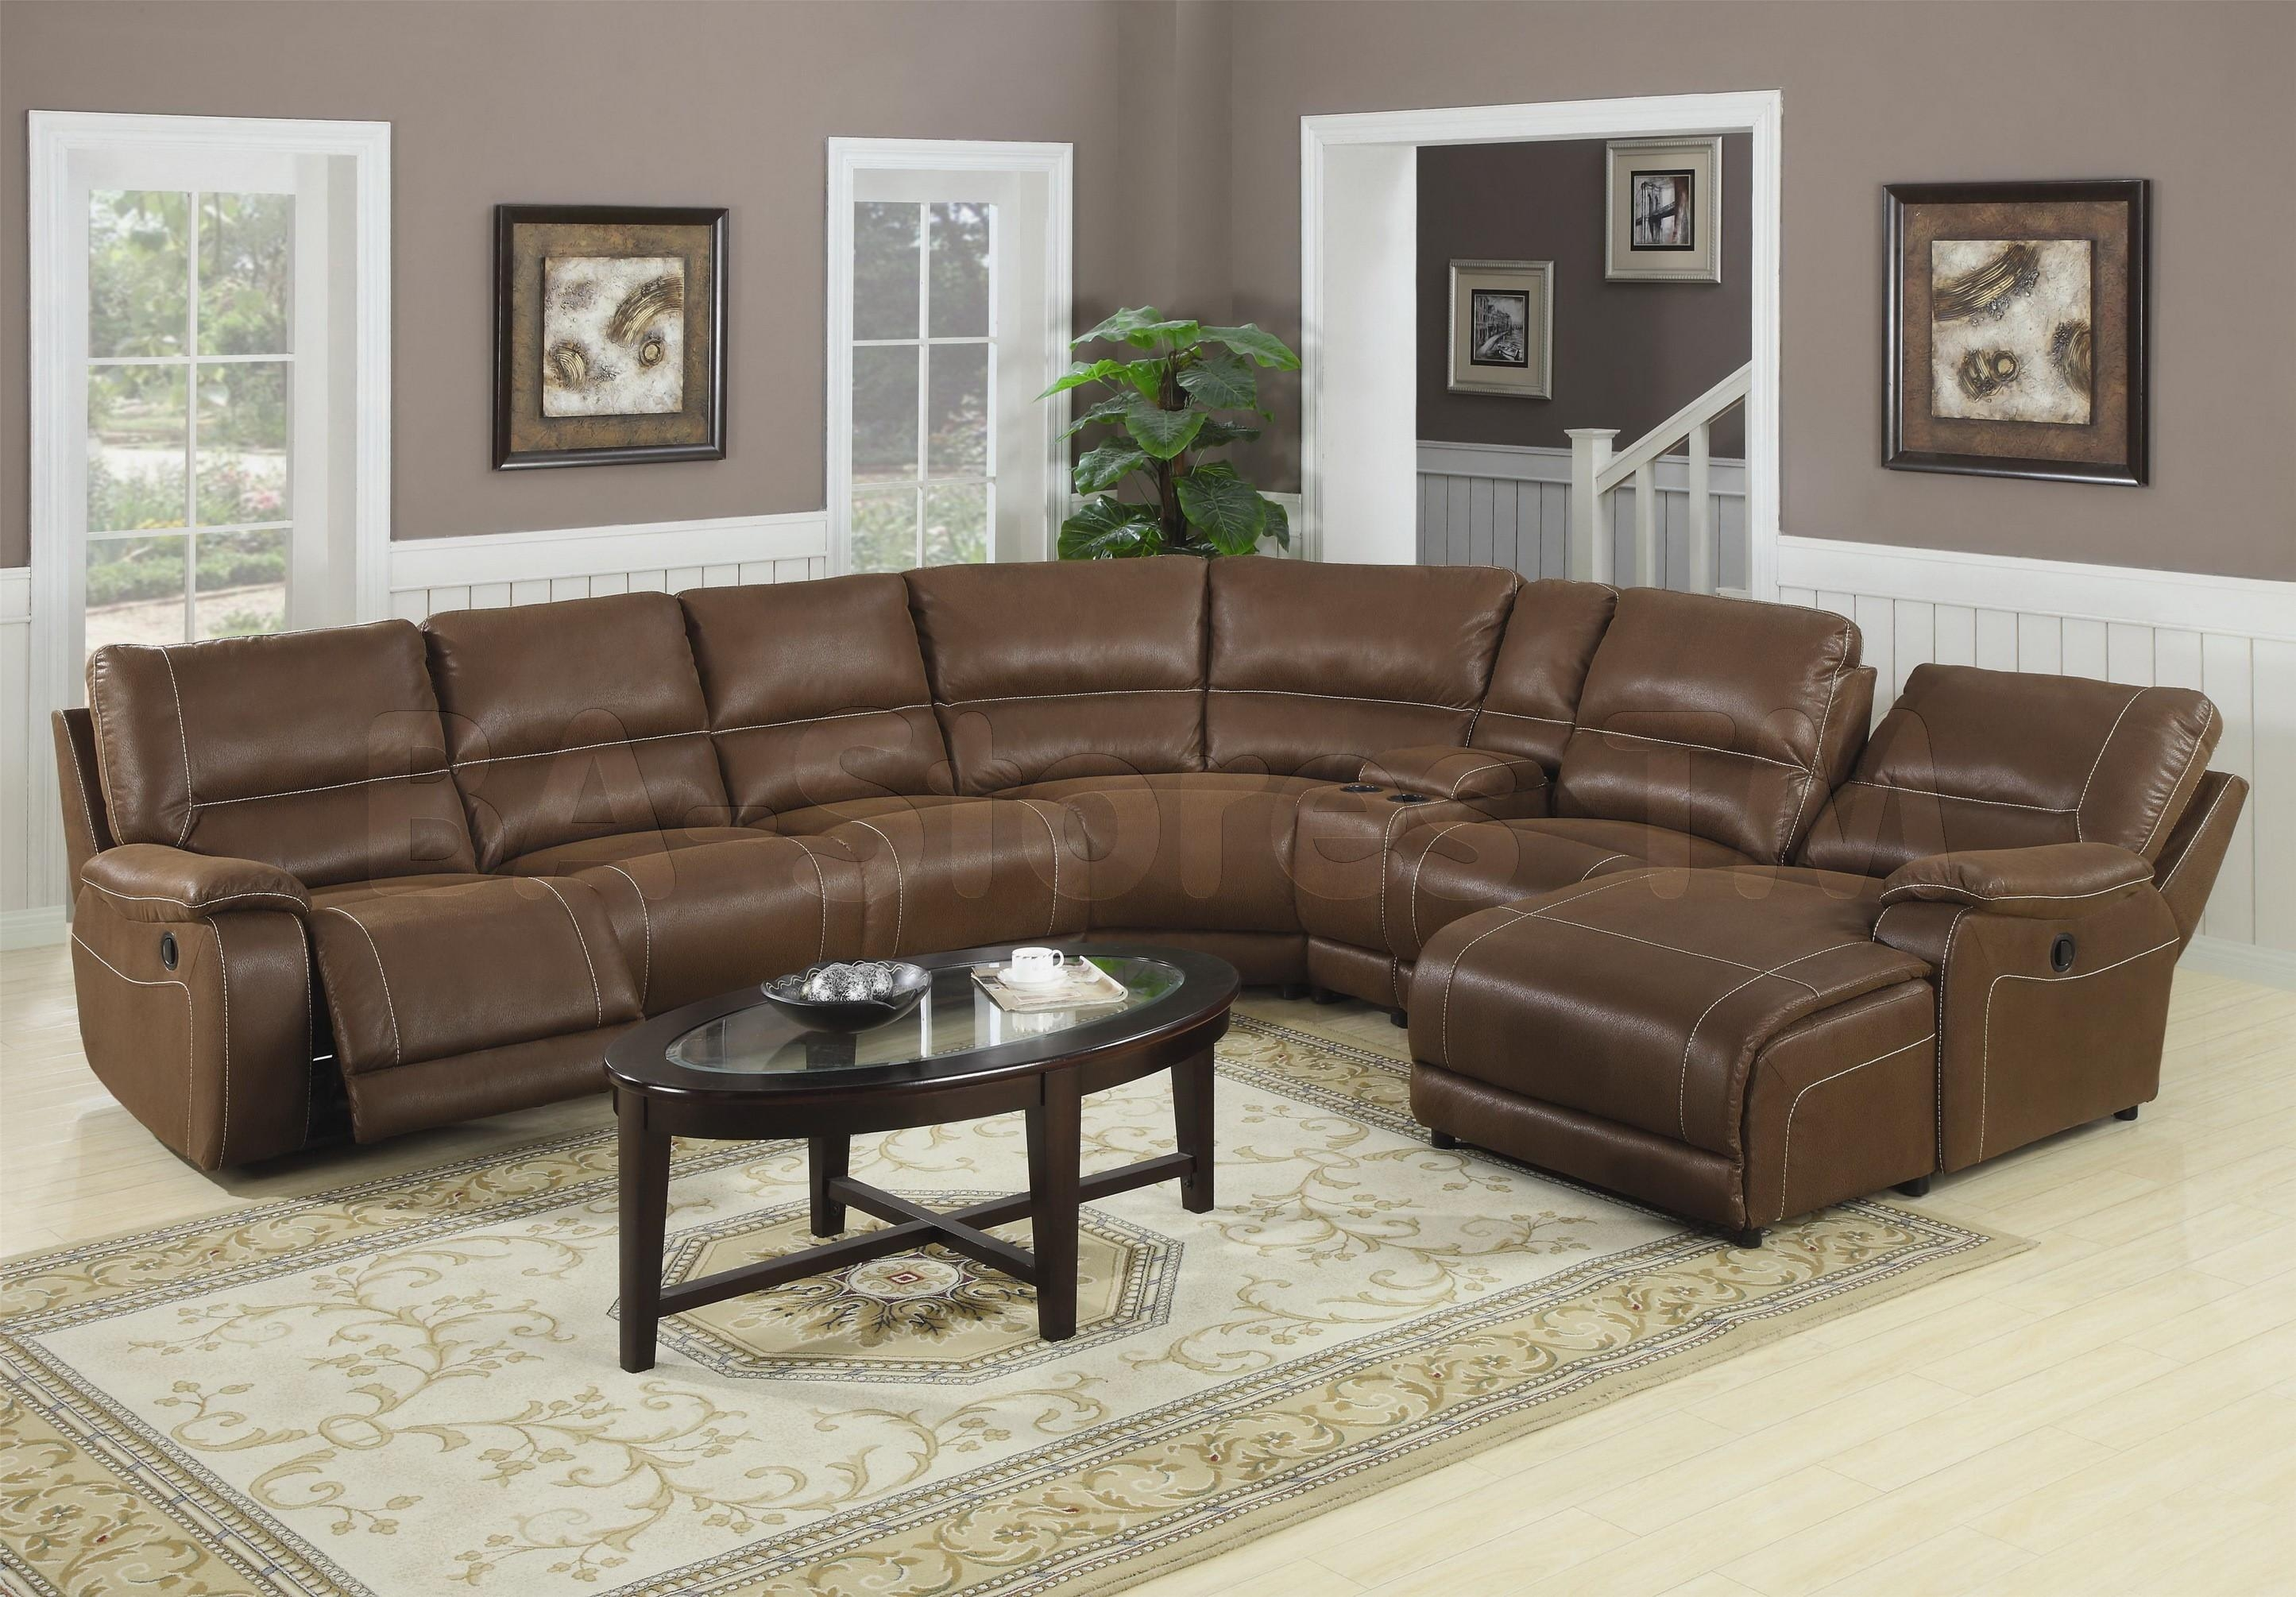 Extra Large Sectional Sofas With Chaise G Home Design With Regard To Extra Large Sectional Sofas (Image 4 of 15)